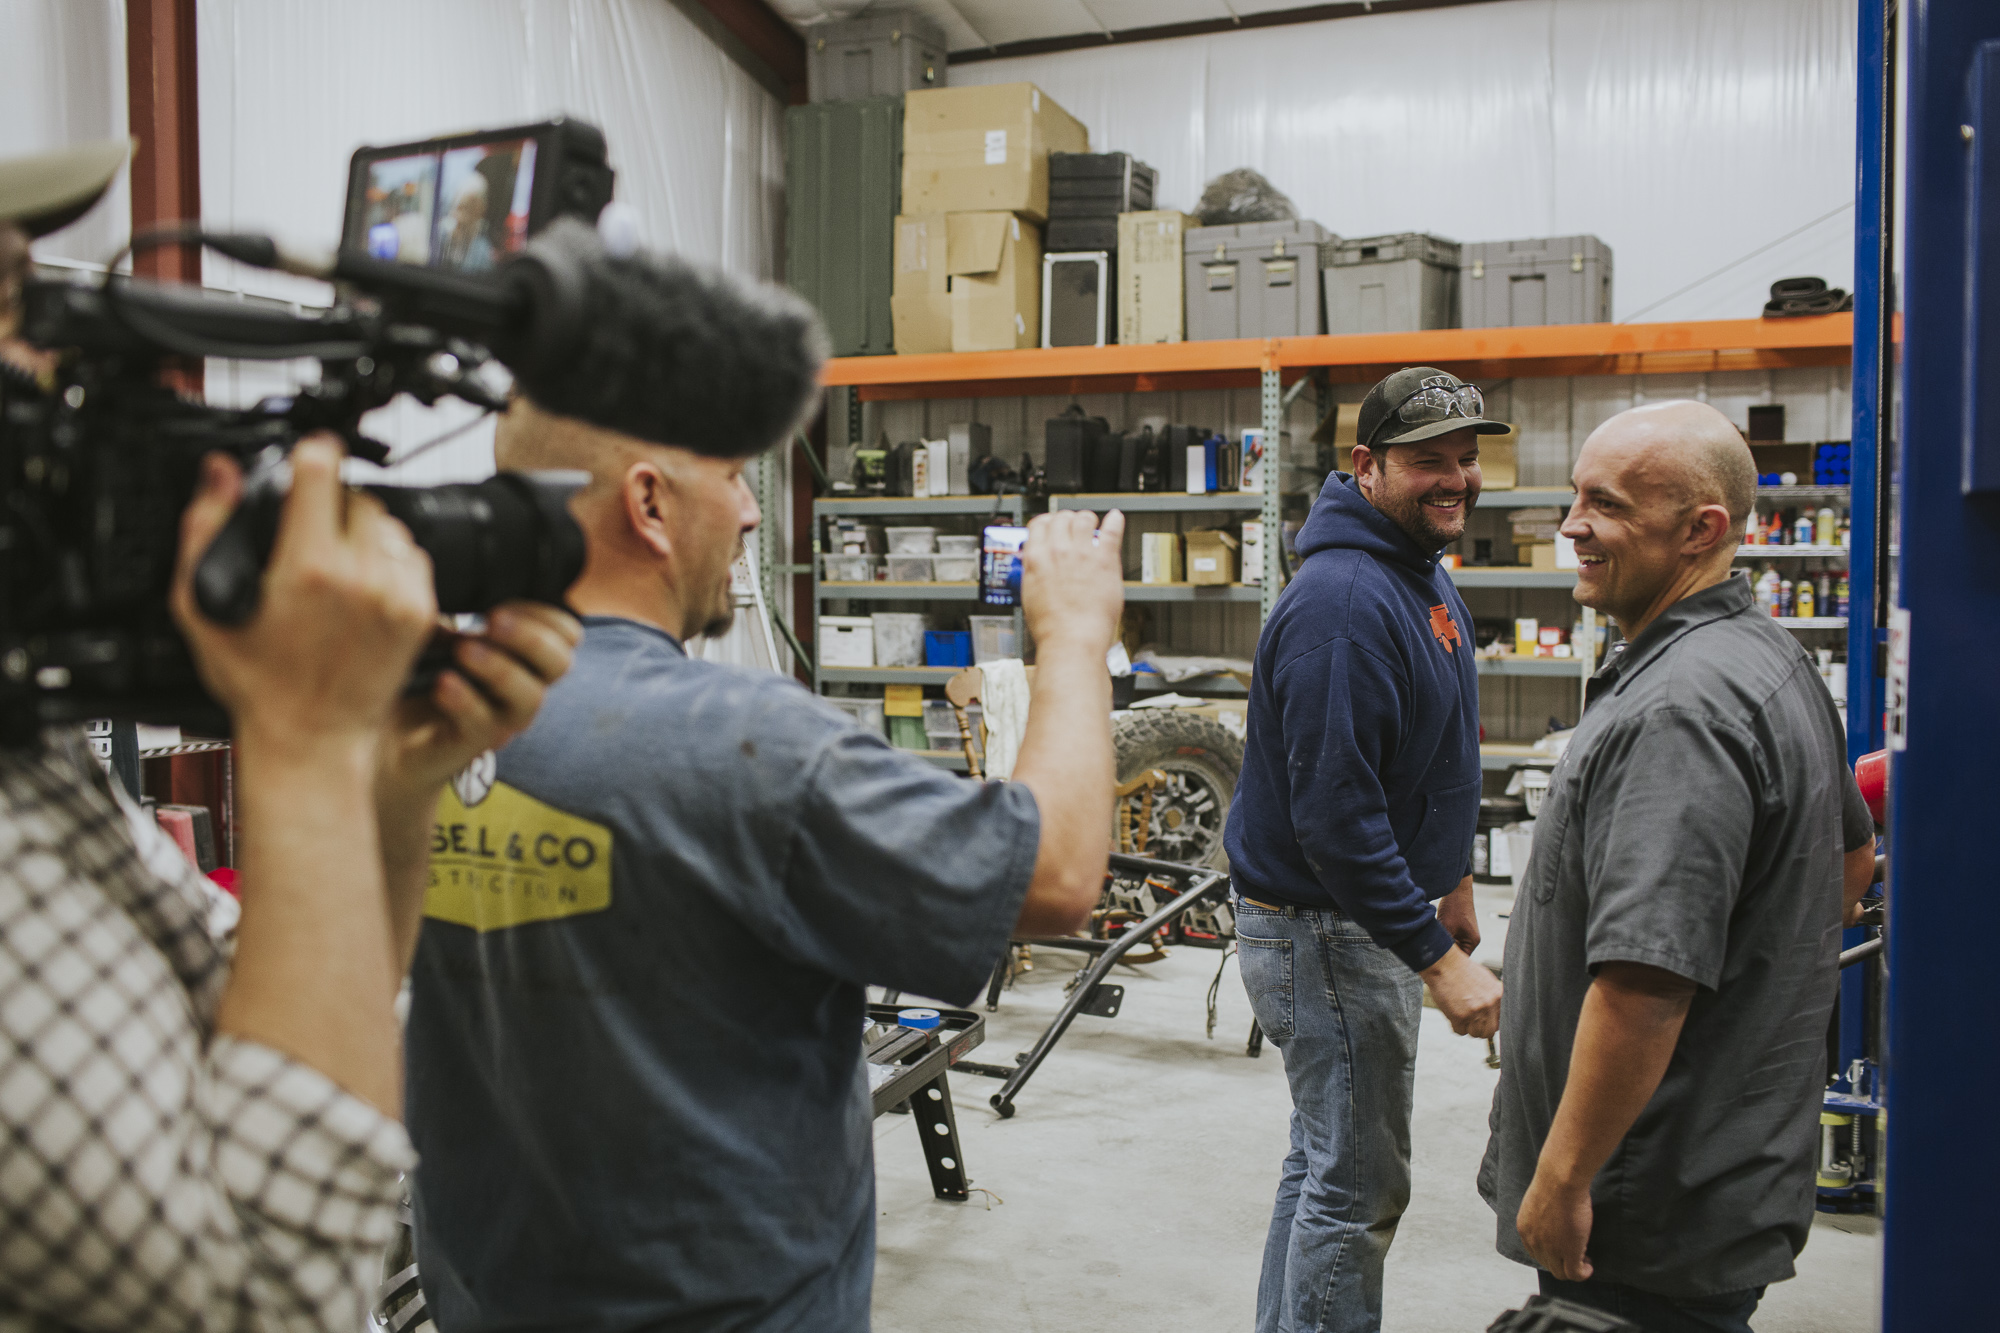 Film crew documents two members of Canguro Racing team